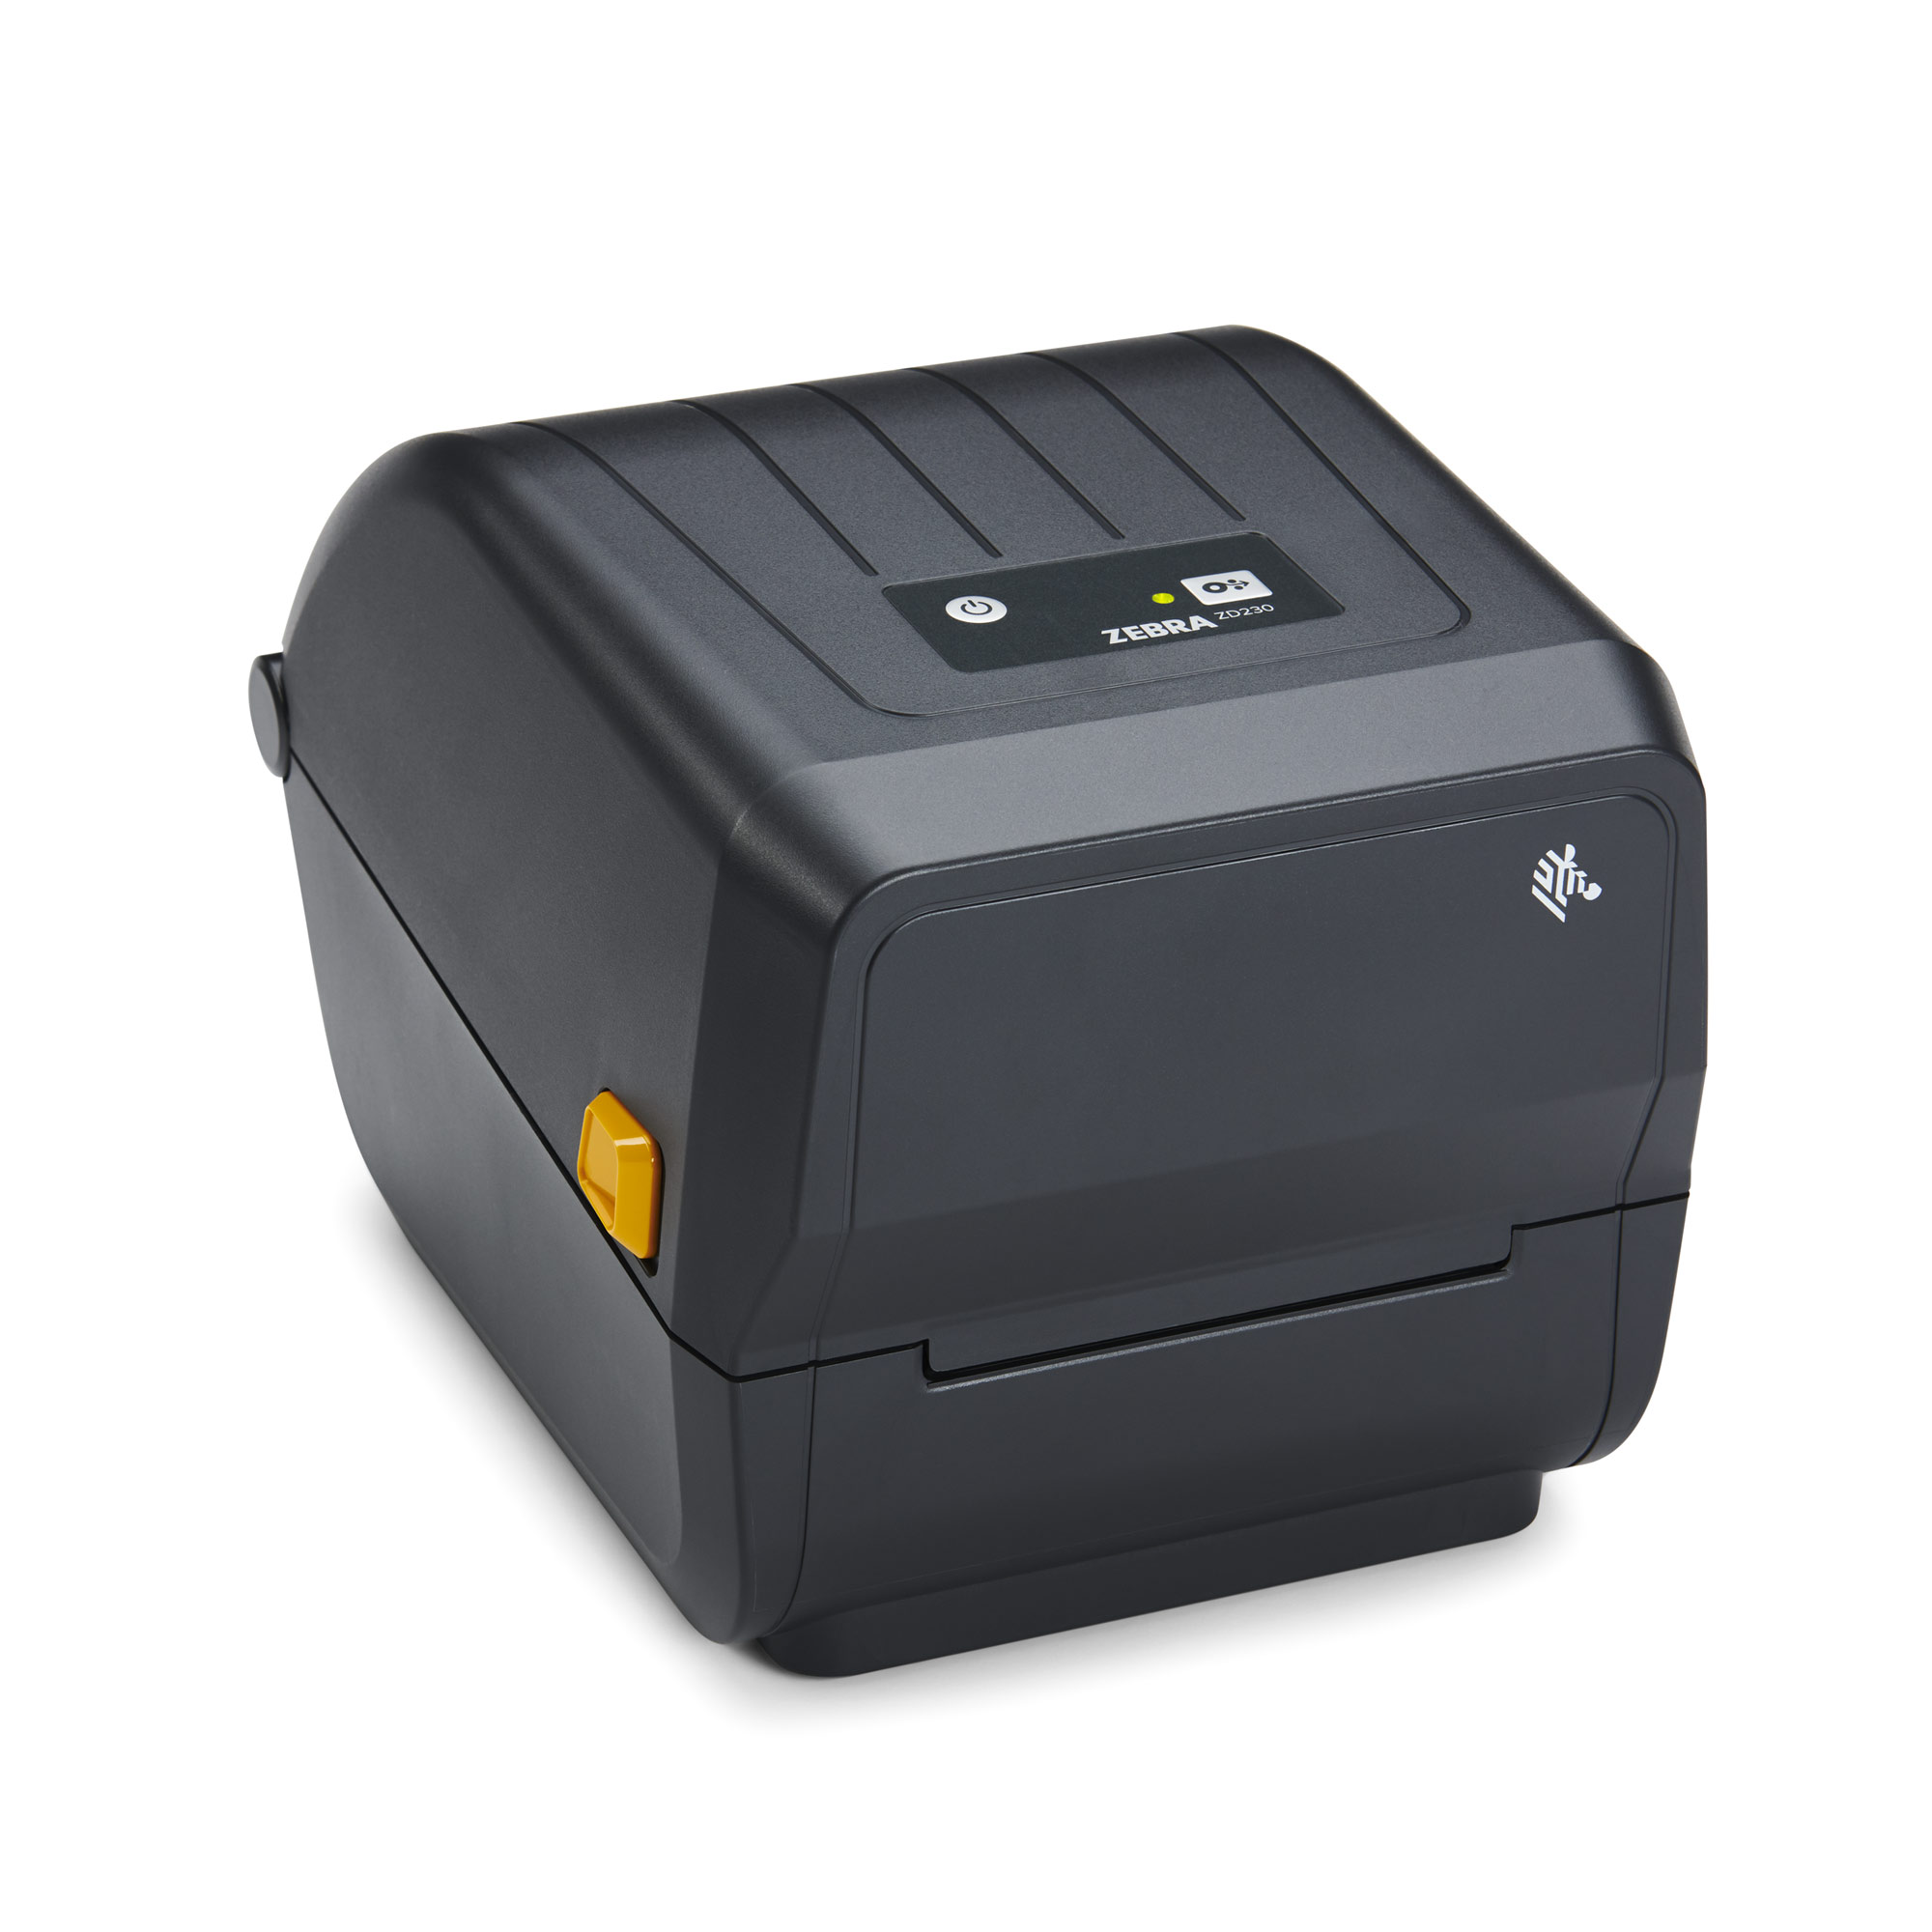 Afbeelding van Zebra ZD230 4-inch Thermal Transfer Printer